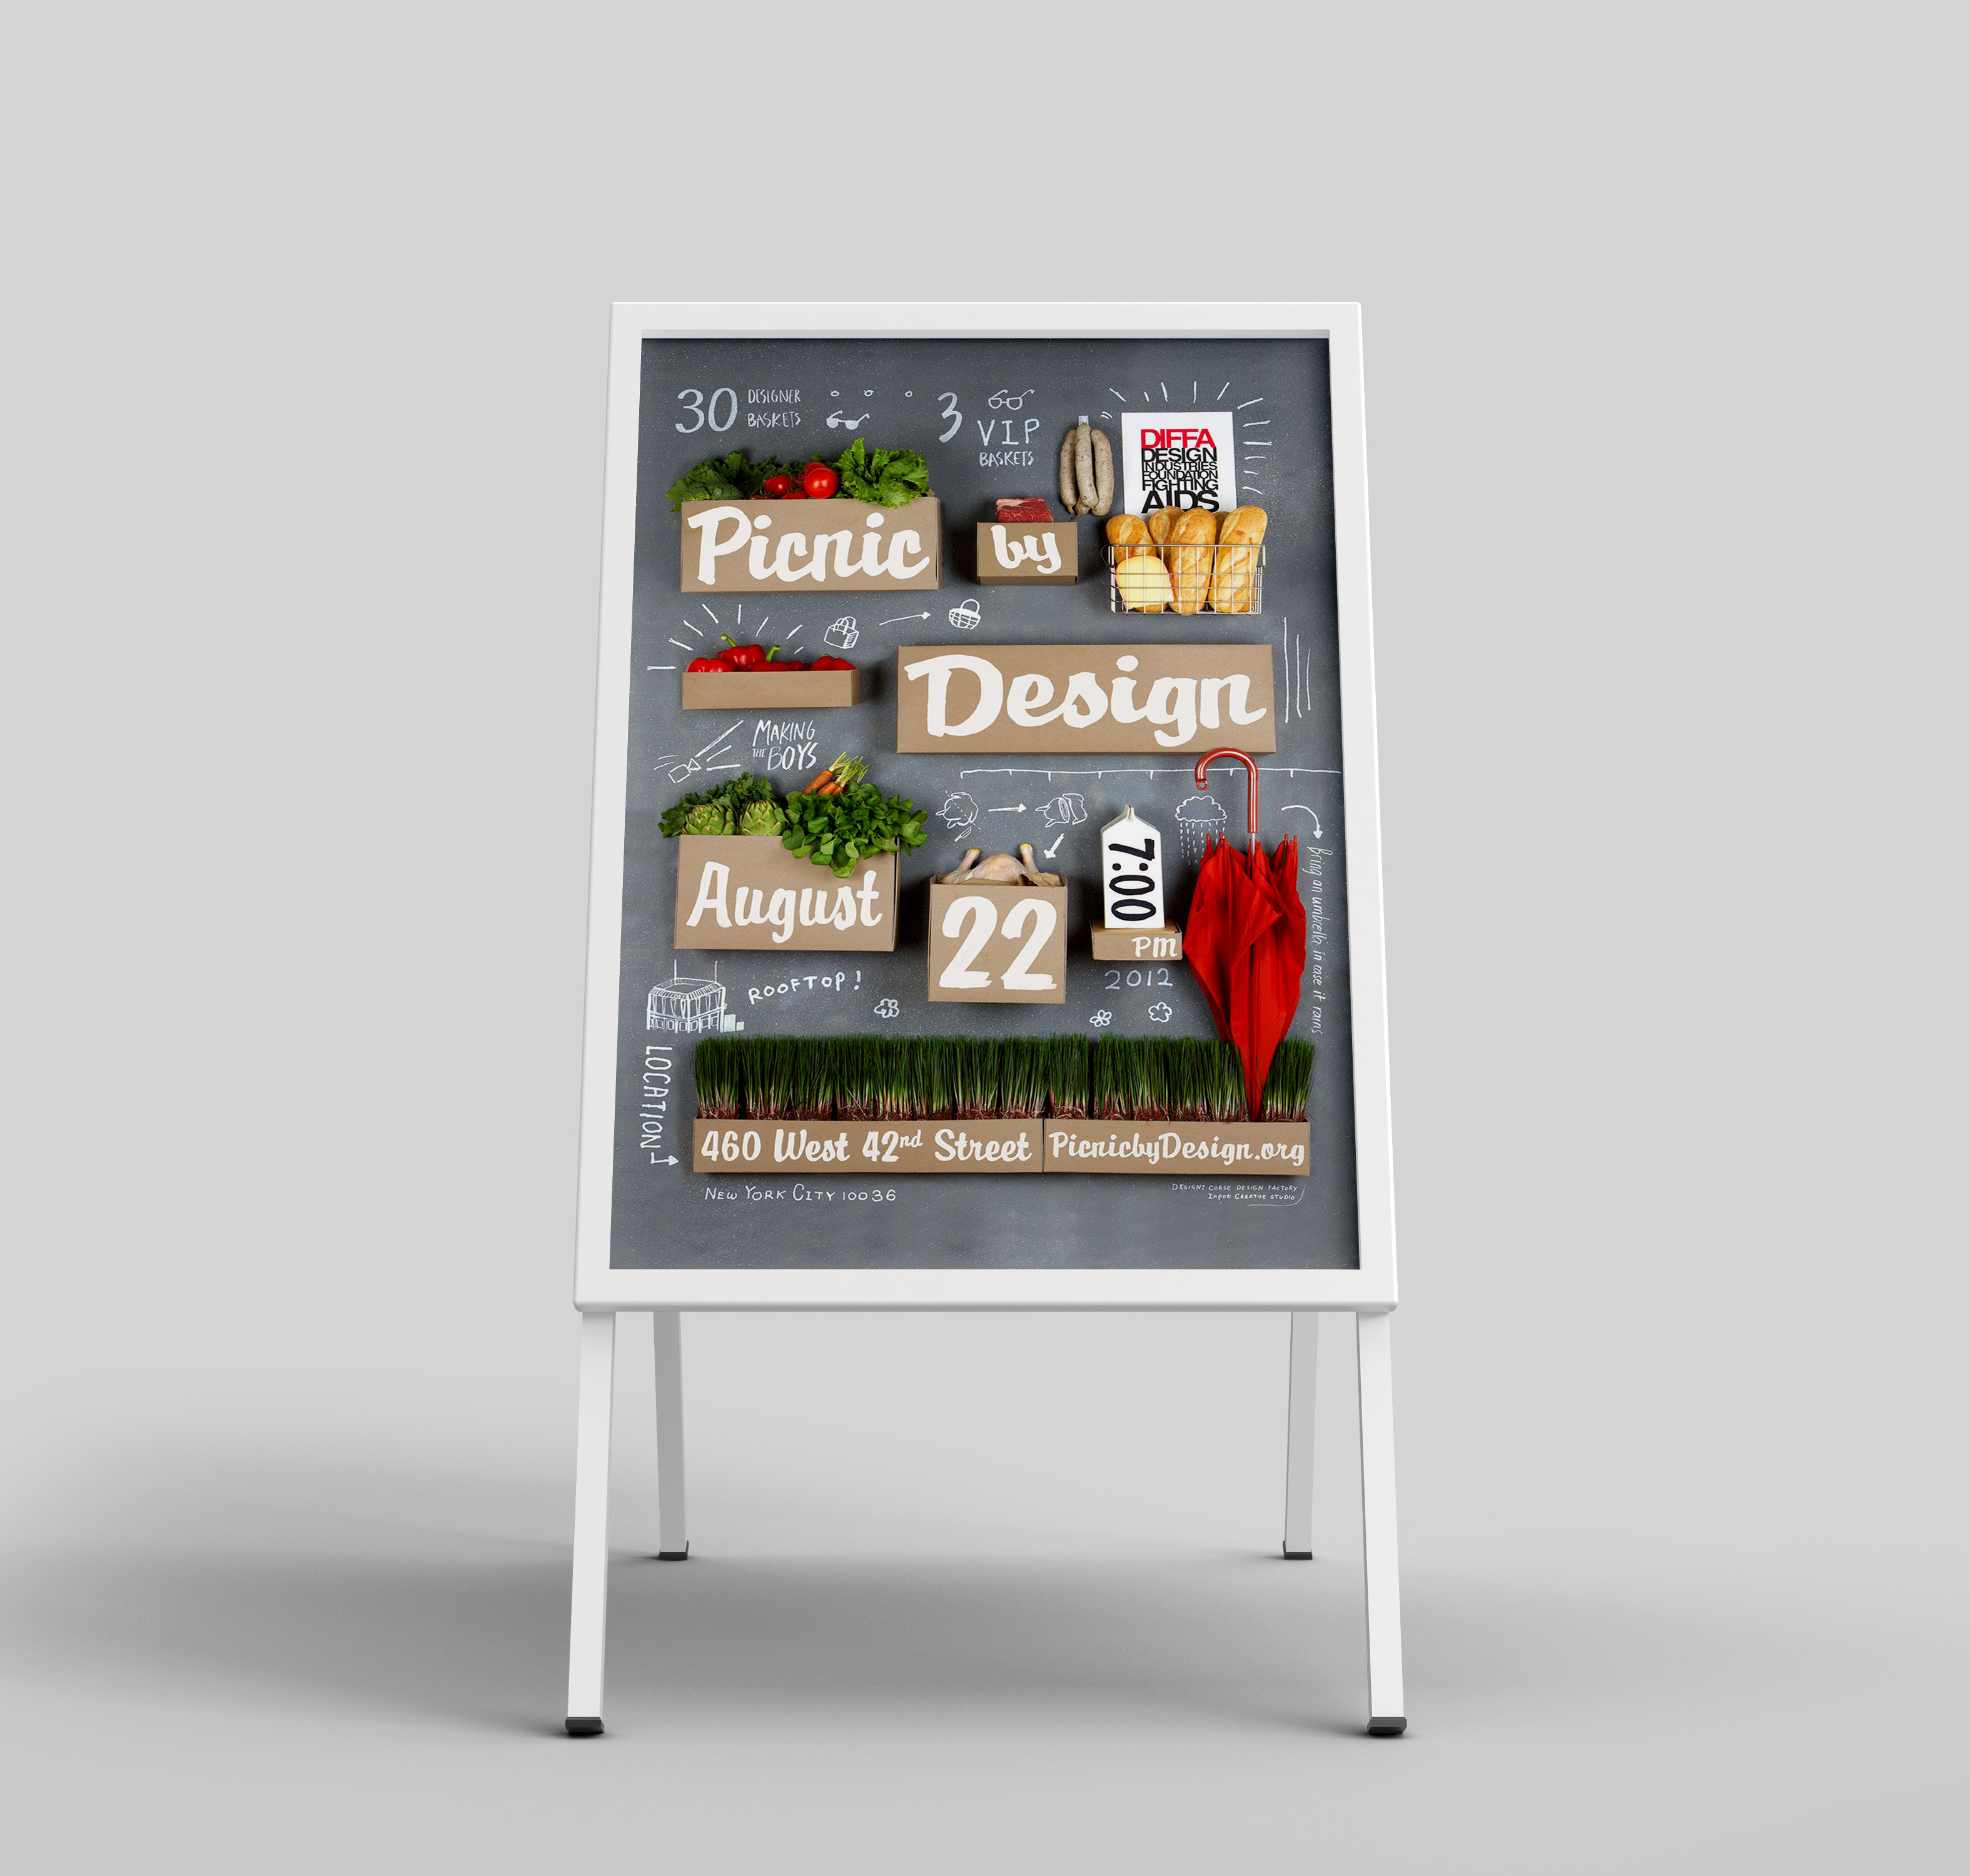 Picnic By Design Event Poster12